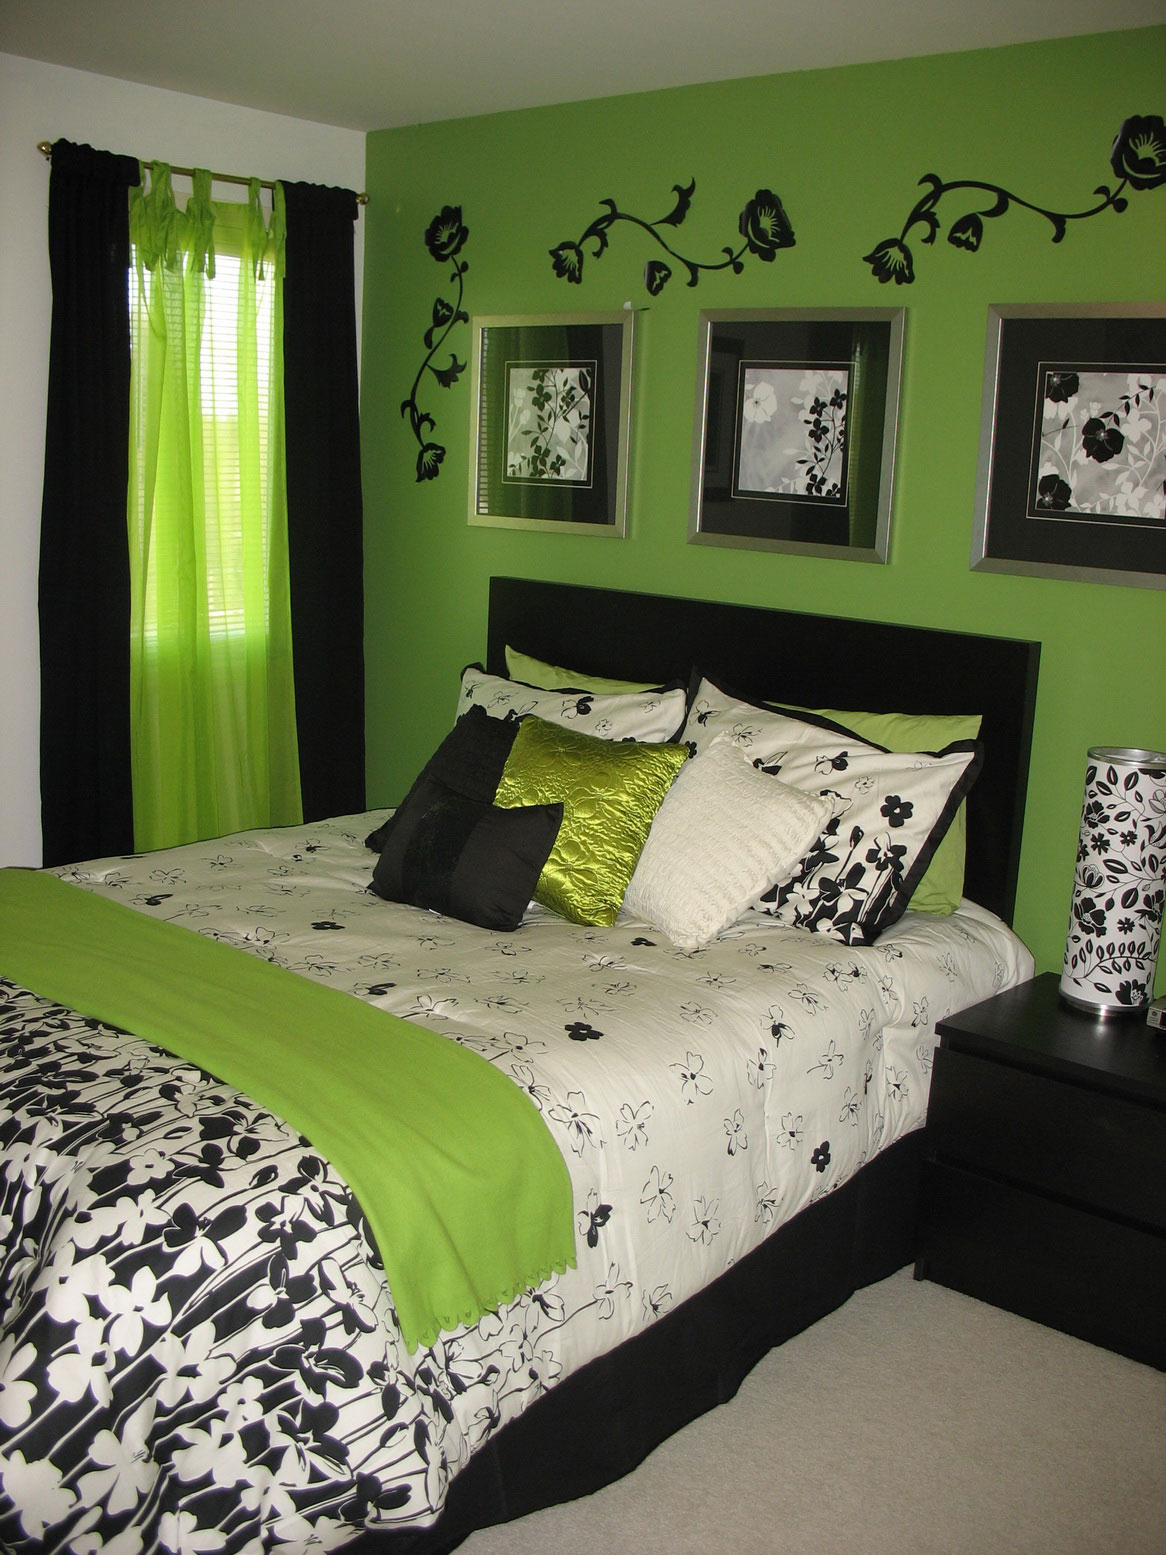 Bedroom ideas for young adults homesfeed for Bedroom ideas hanging pictures